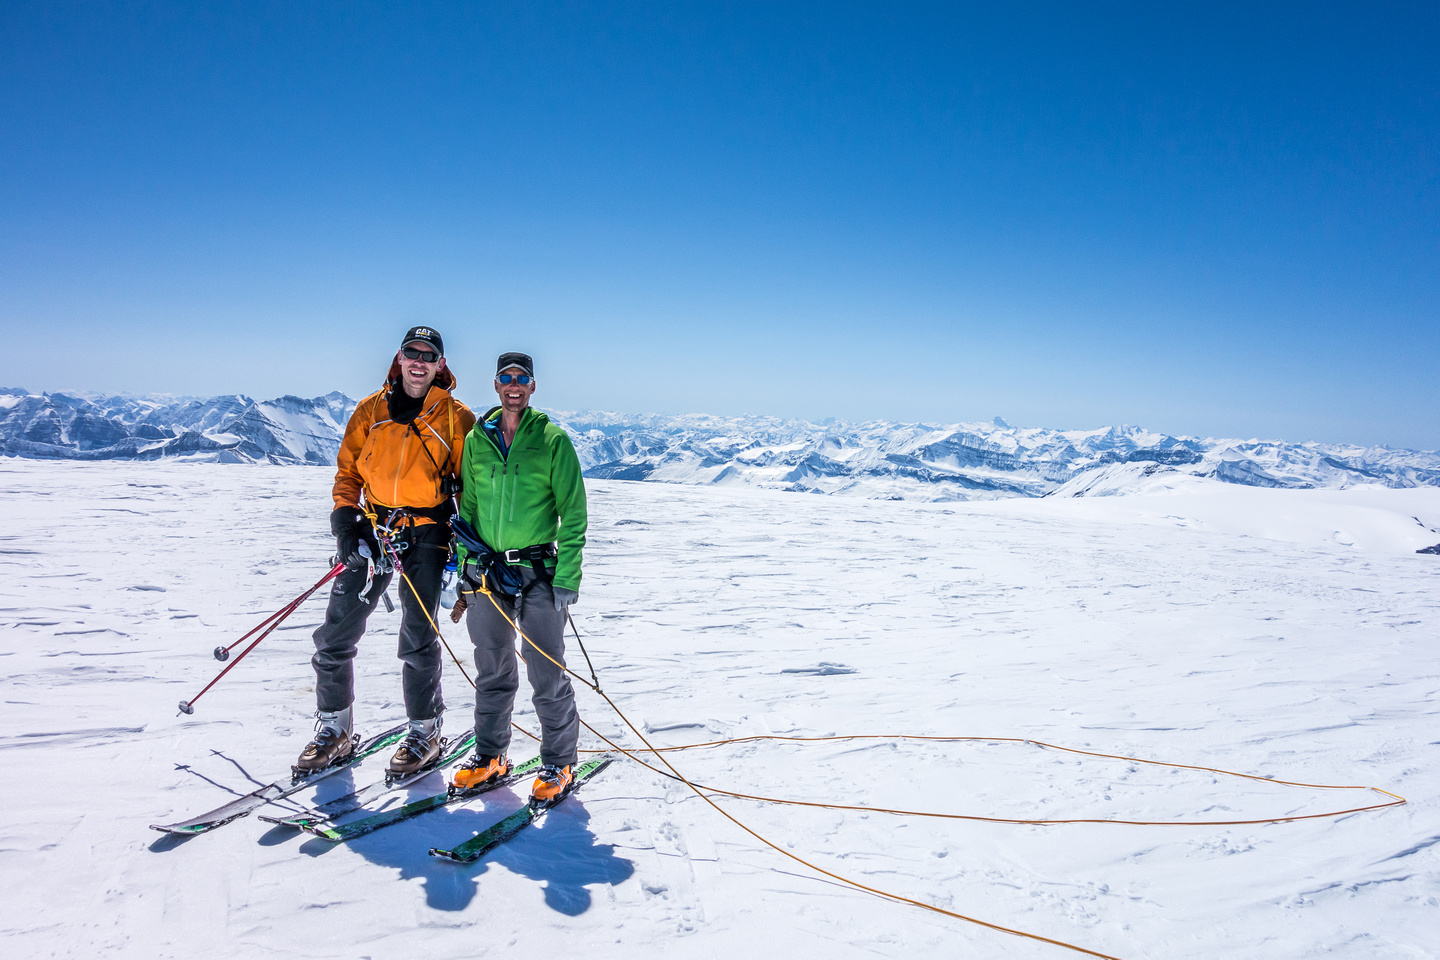 JW and Vern on the summit of Snow Dome.